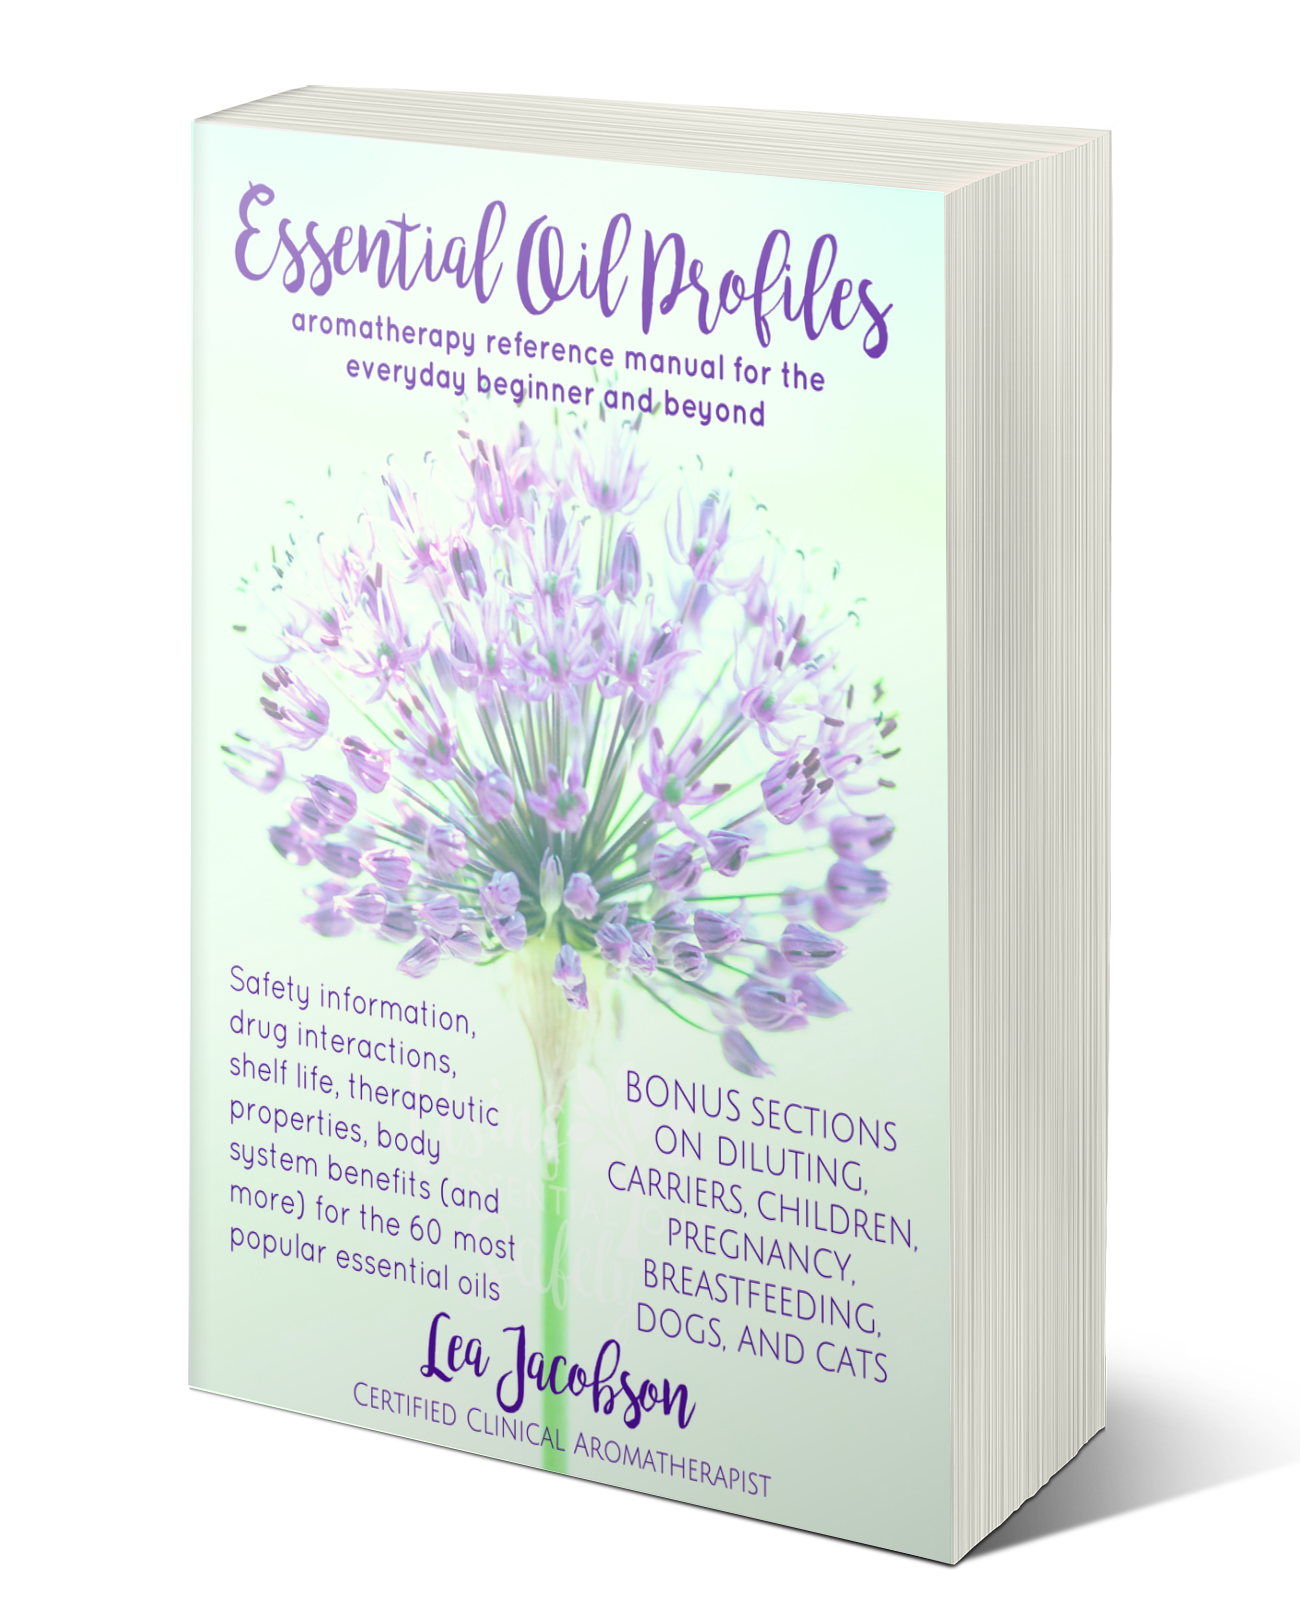 Essential oil profiles ebook download a 26 page sample of the 194 page ebook by clicking here essential oil profiles ebook sample on dropbox fandeluxe